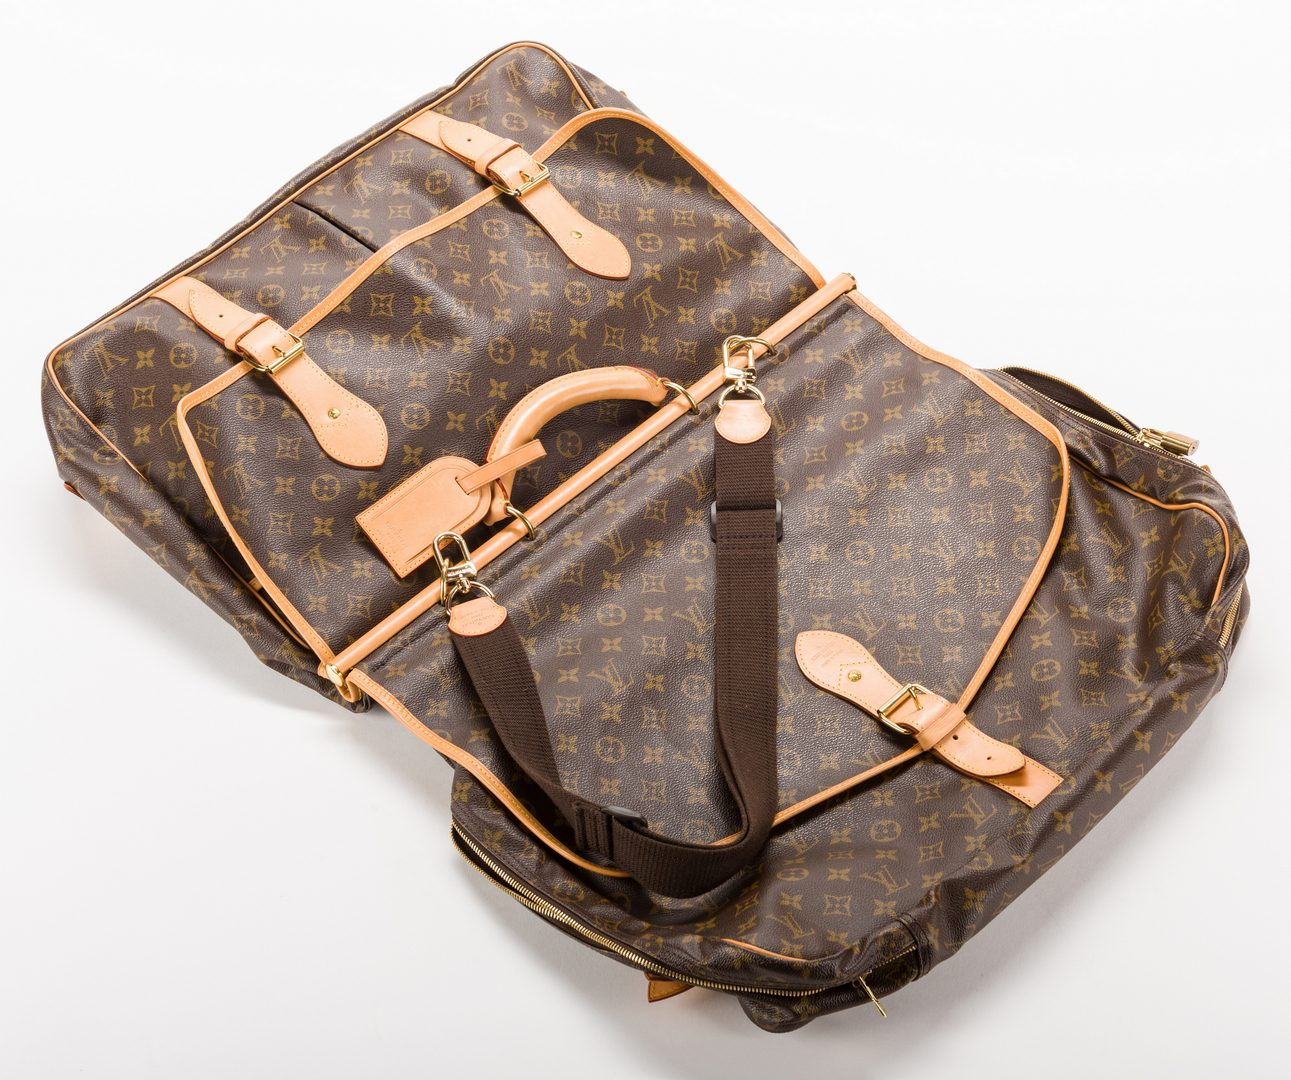 Lot 833: Louis Vuitton Monogram Canvas Hunting Satchel